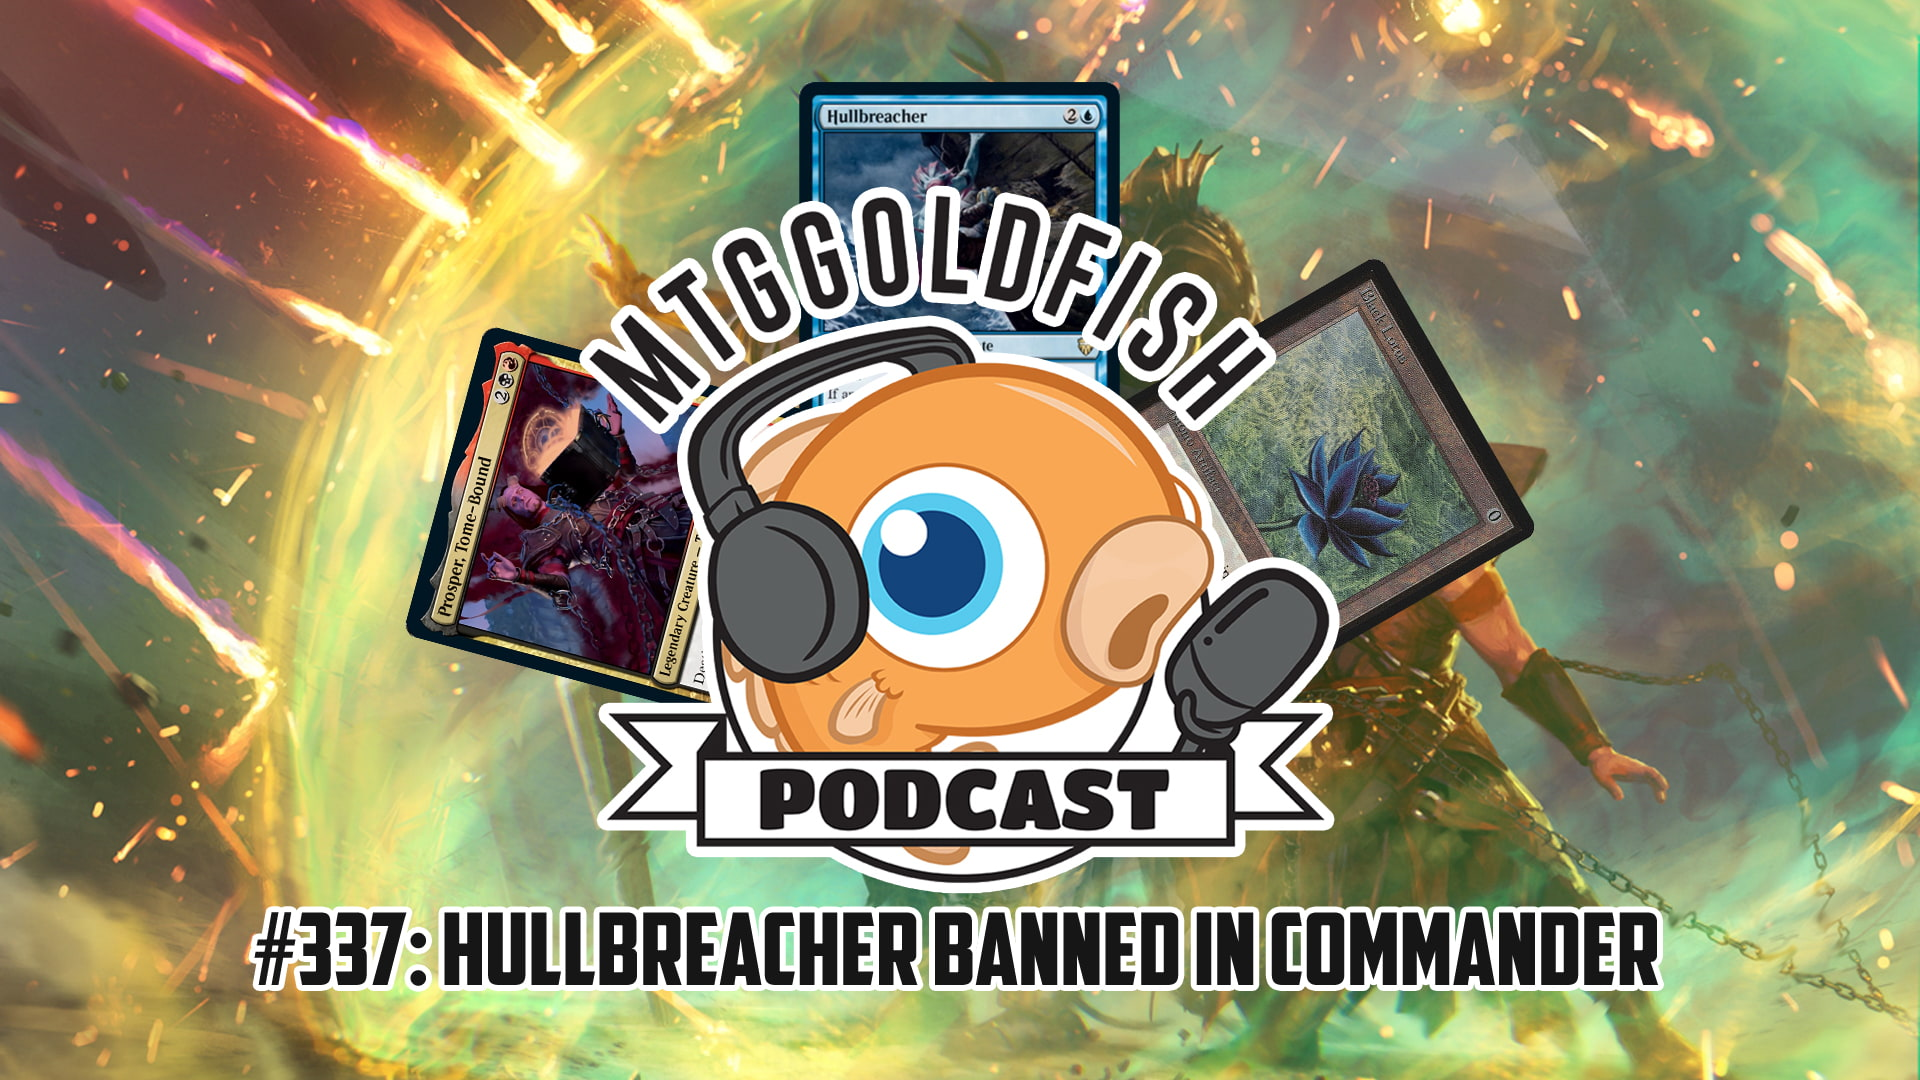 Image for Podcast 337: Hullbreacher Banned in Commander